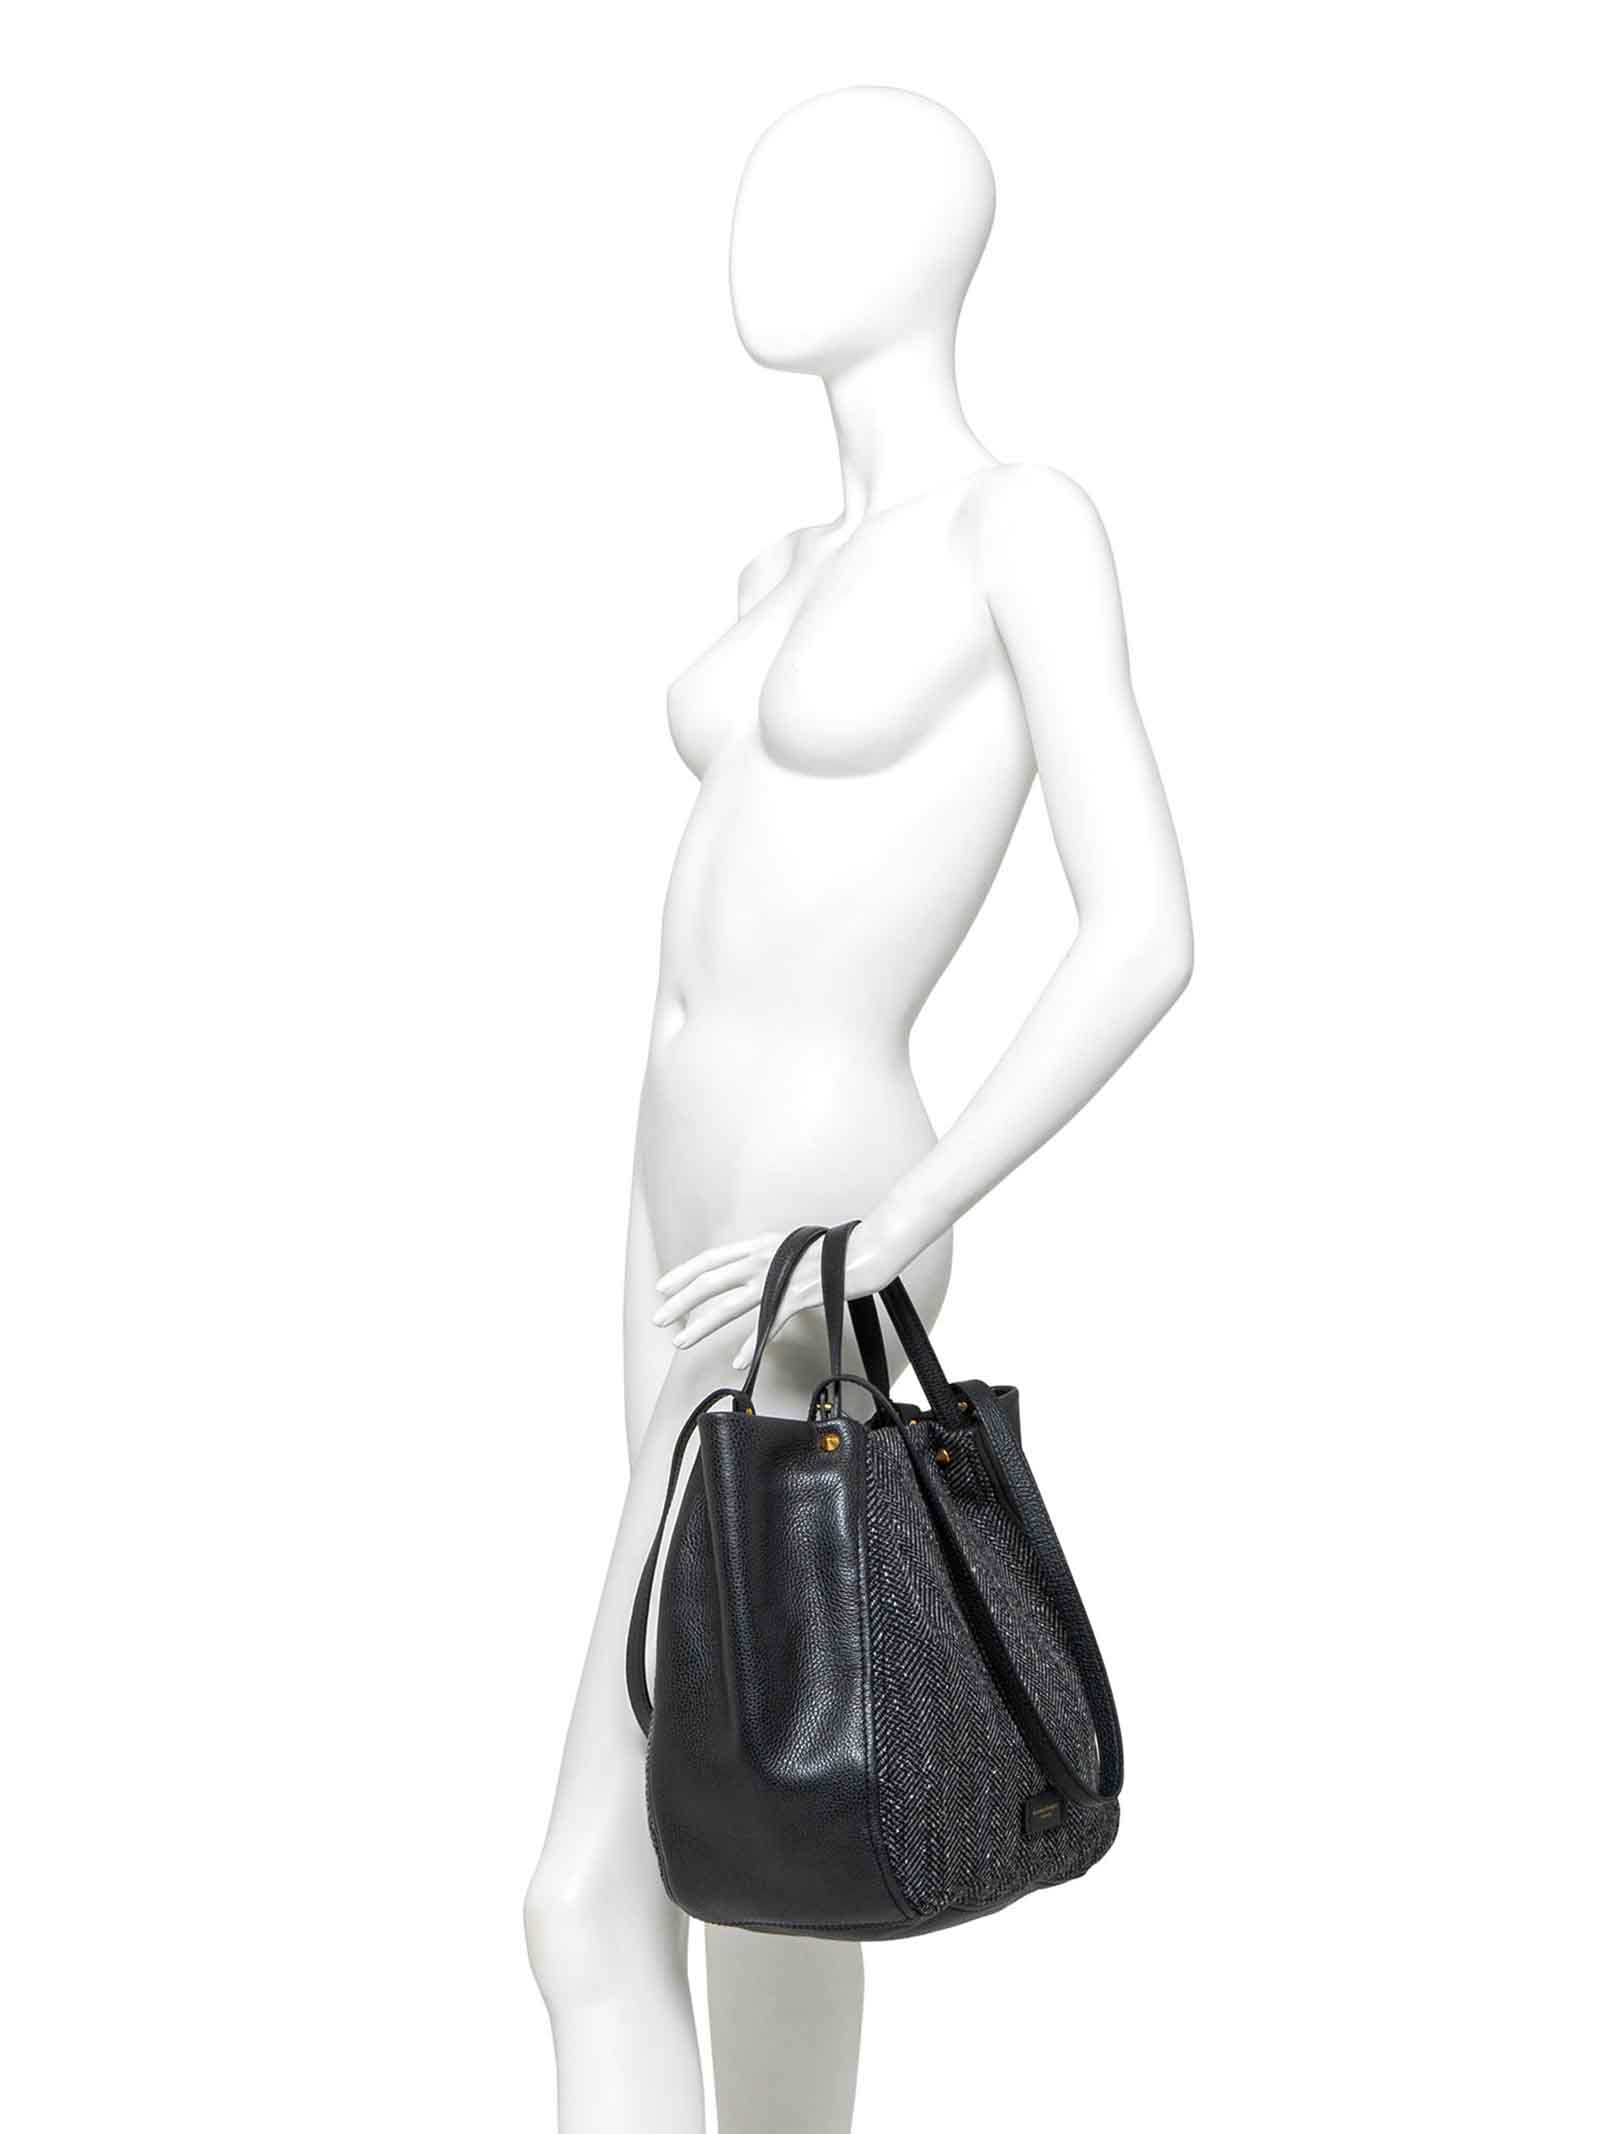 Women's Shoulder Bag Tulip in Black Leather and Fabric with Gold Studs and Zip Closure Gianni Chiarini   Bags and backpacks   BS938510313